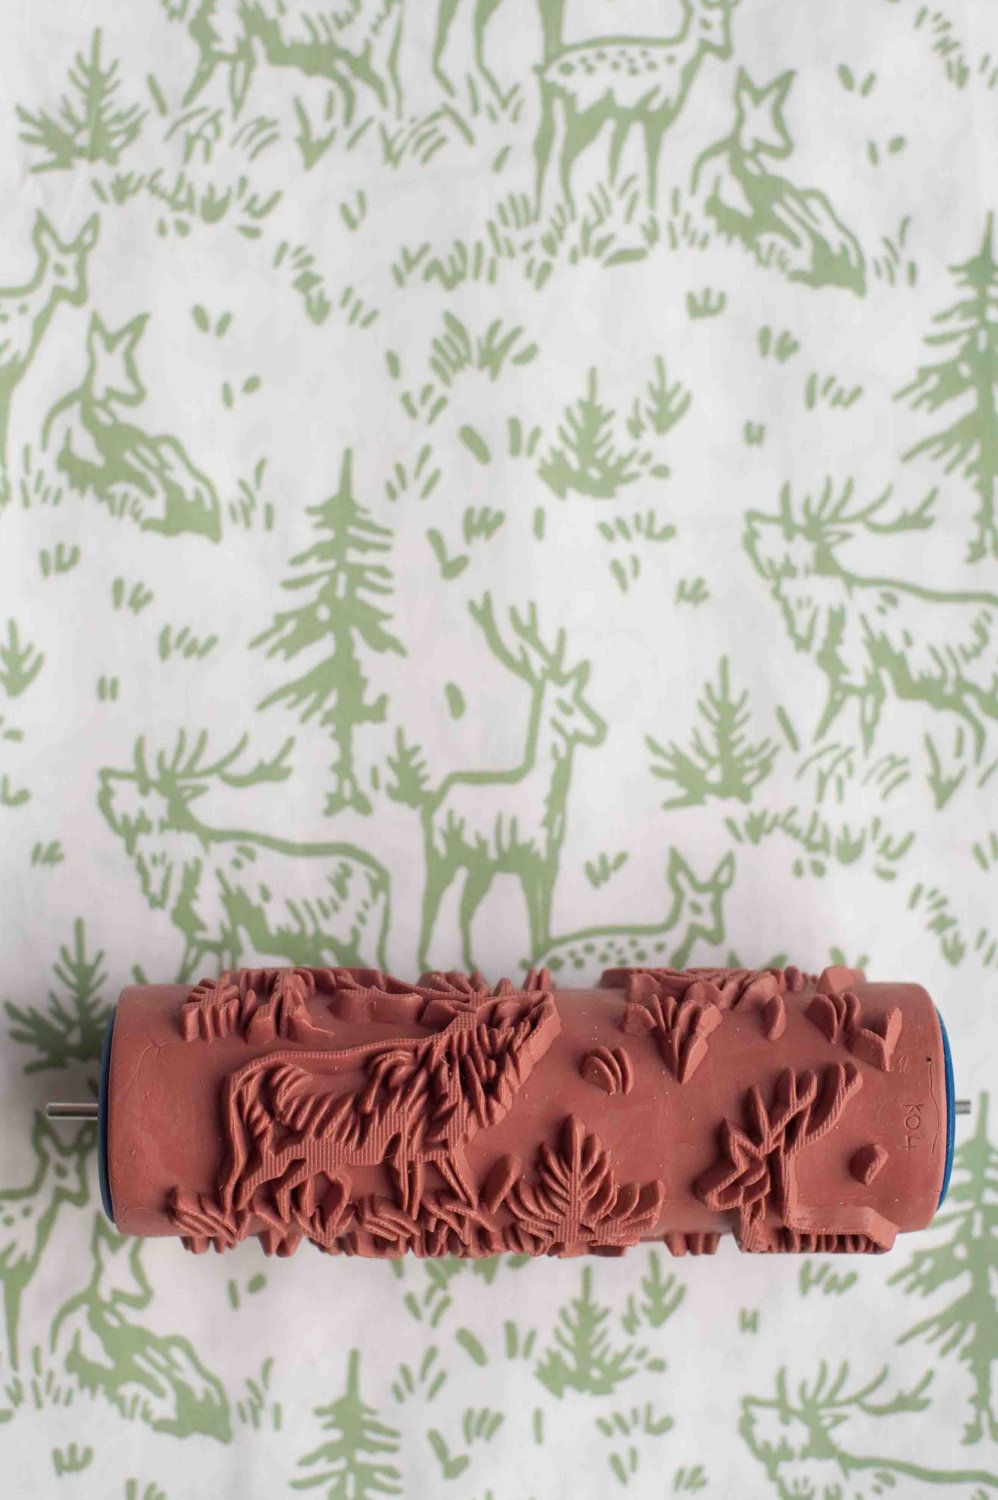 No 6 Patterned Paint Roller From The Painted House Patterned